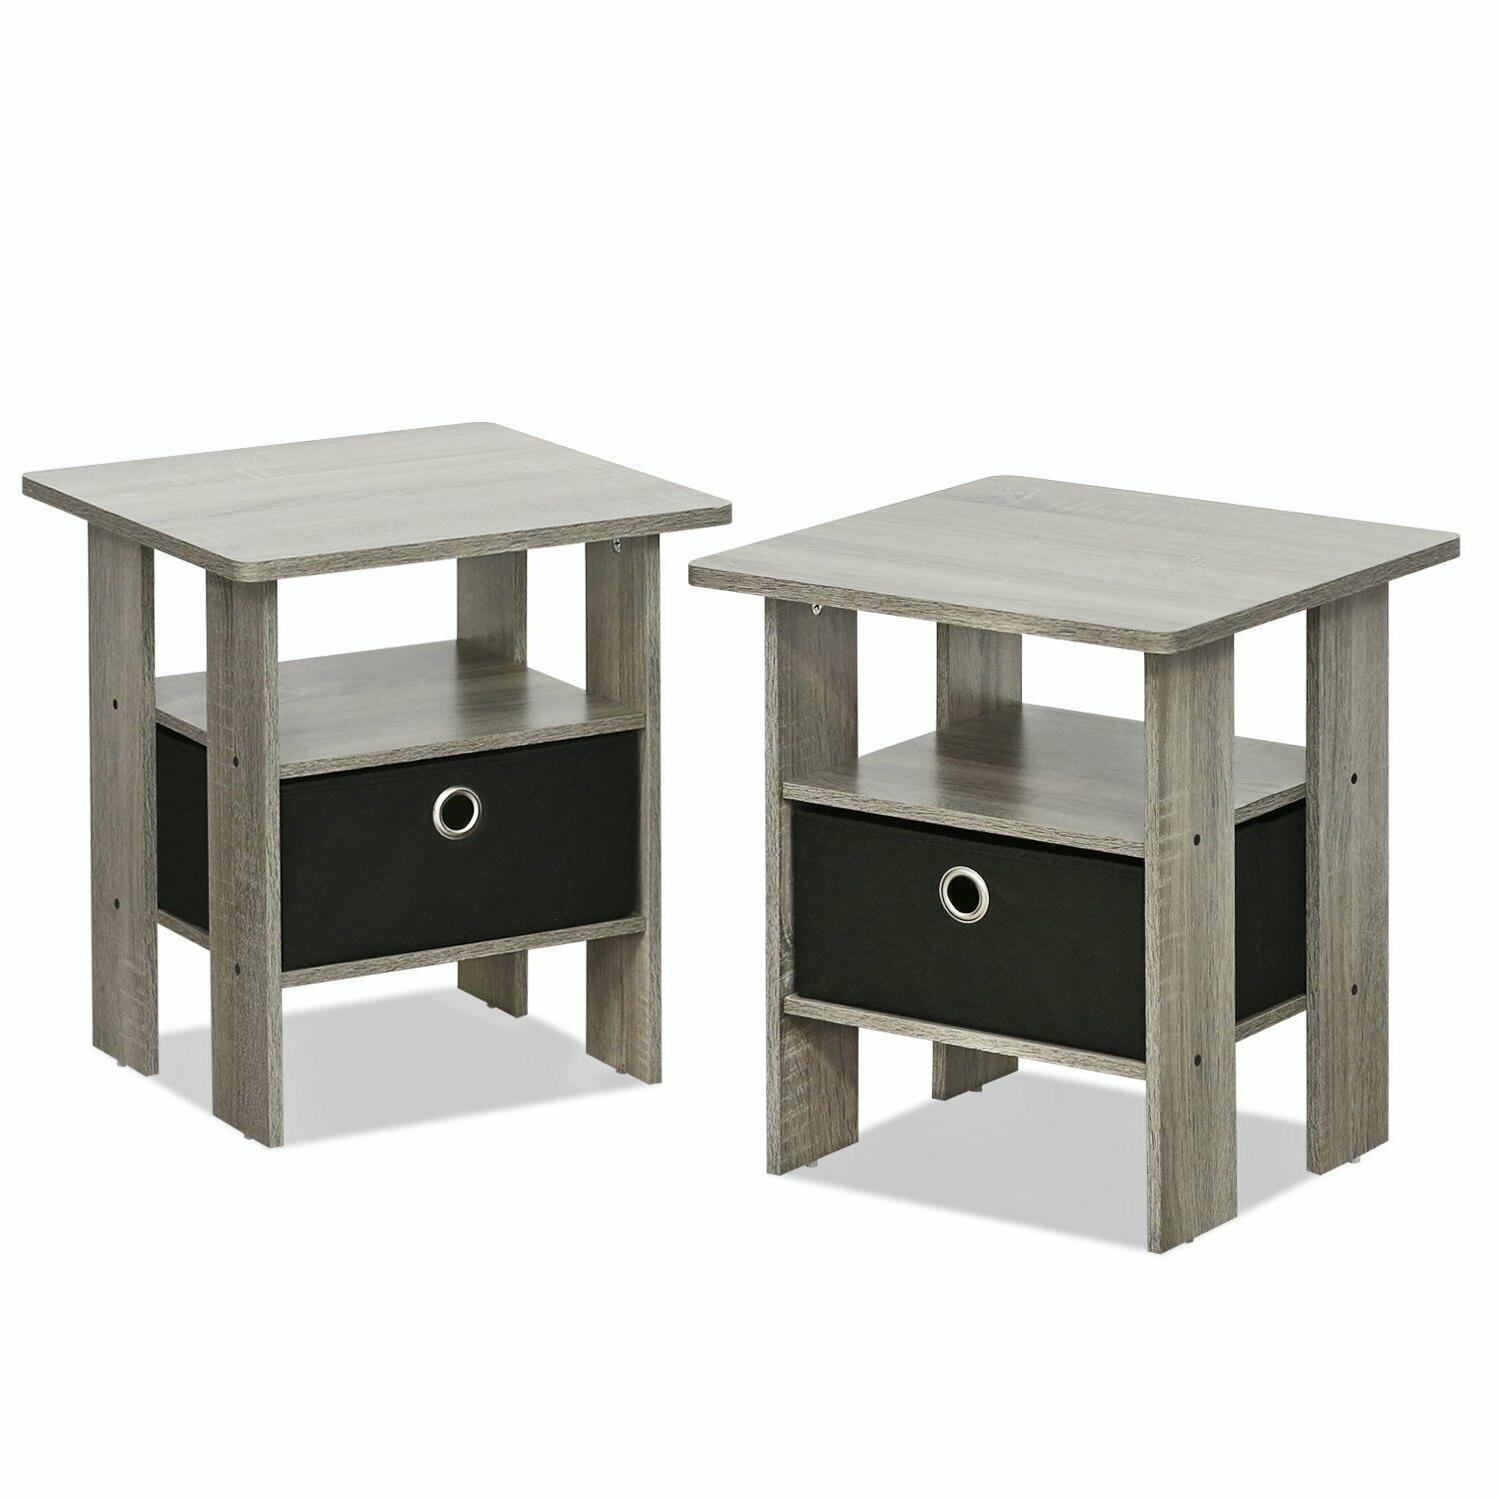 2 11157gyw petite night stand 2 end